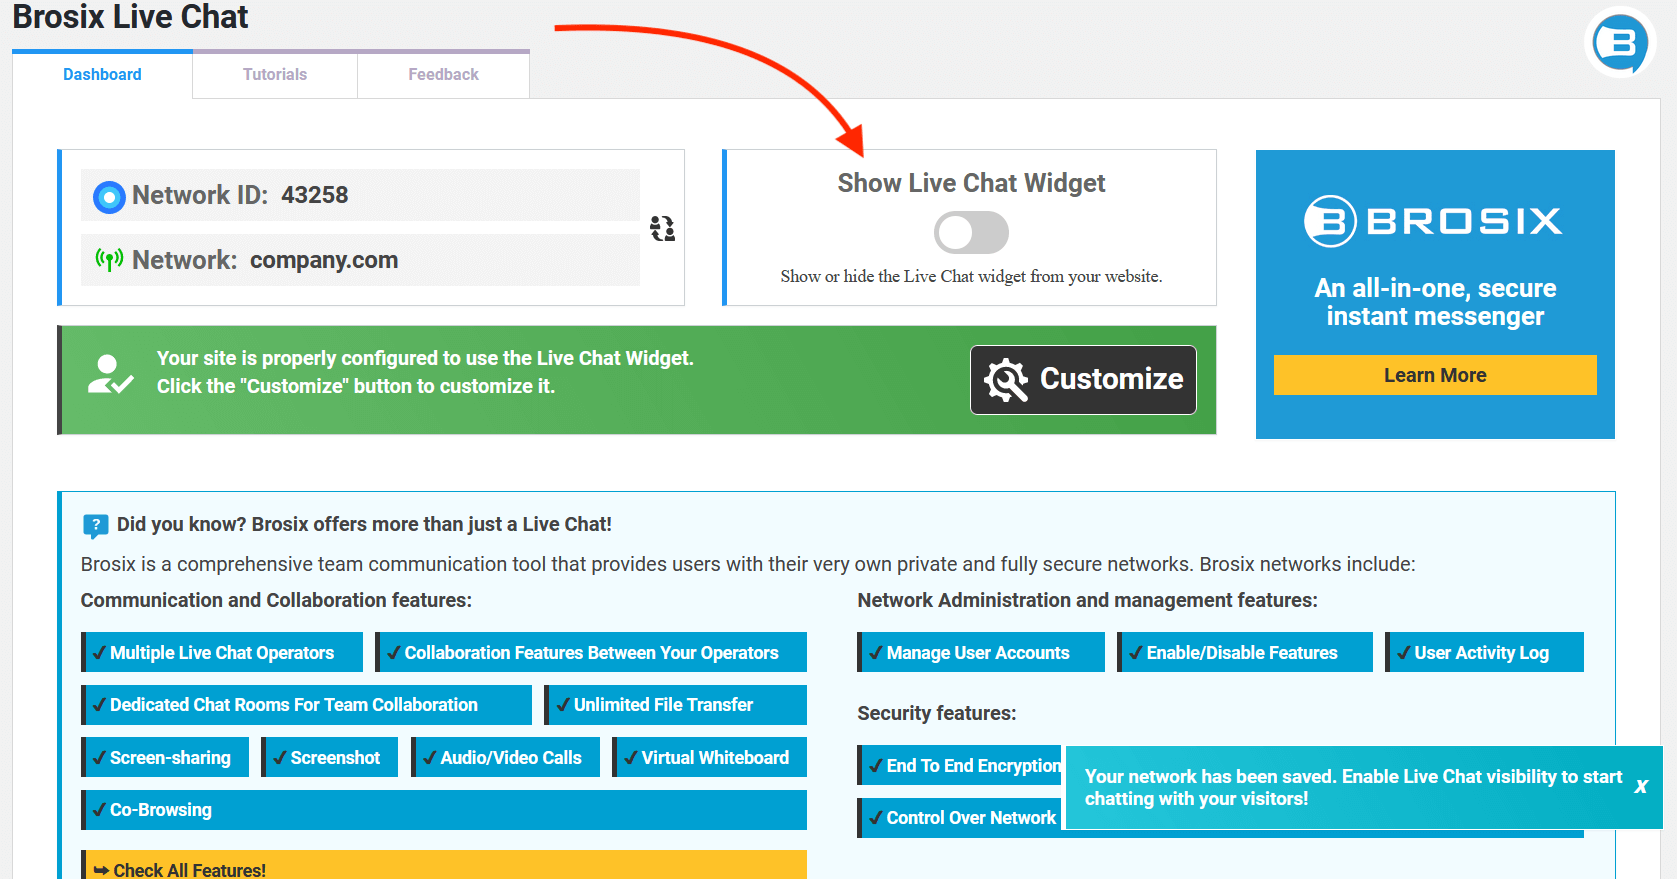 Click show live chat widget